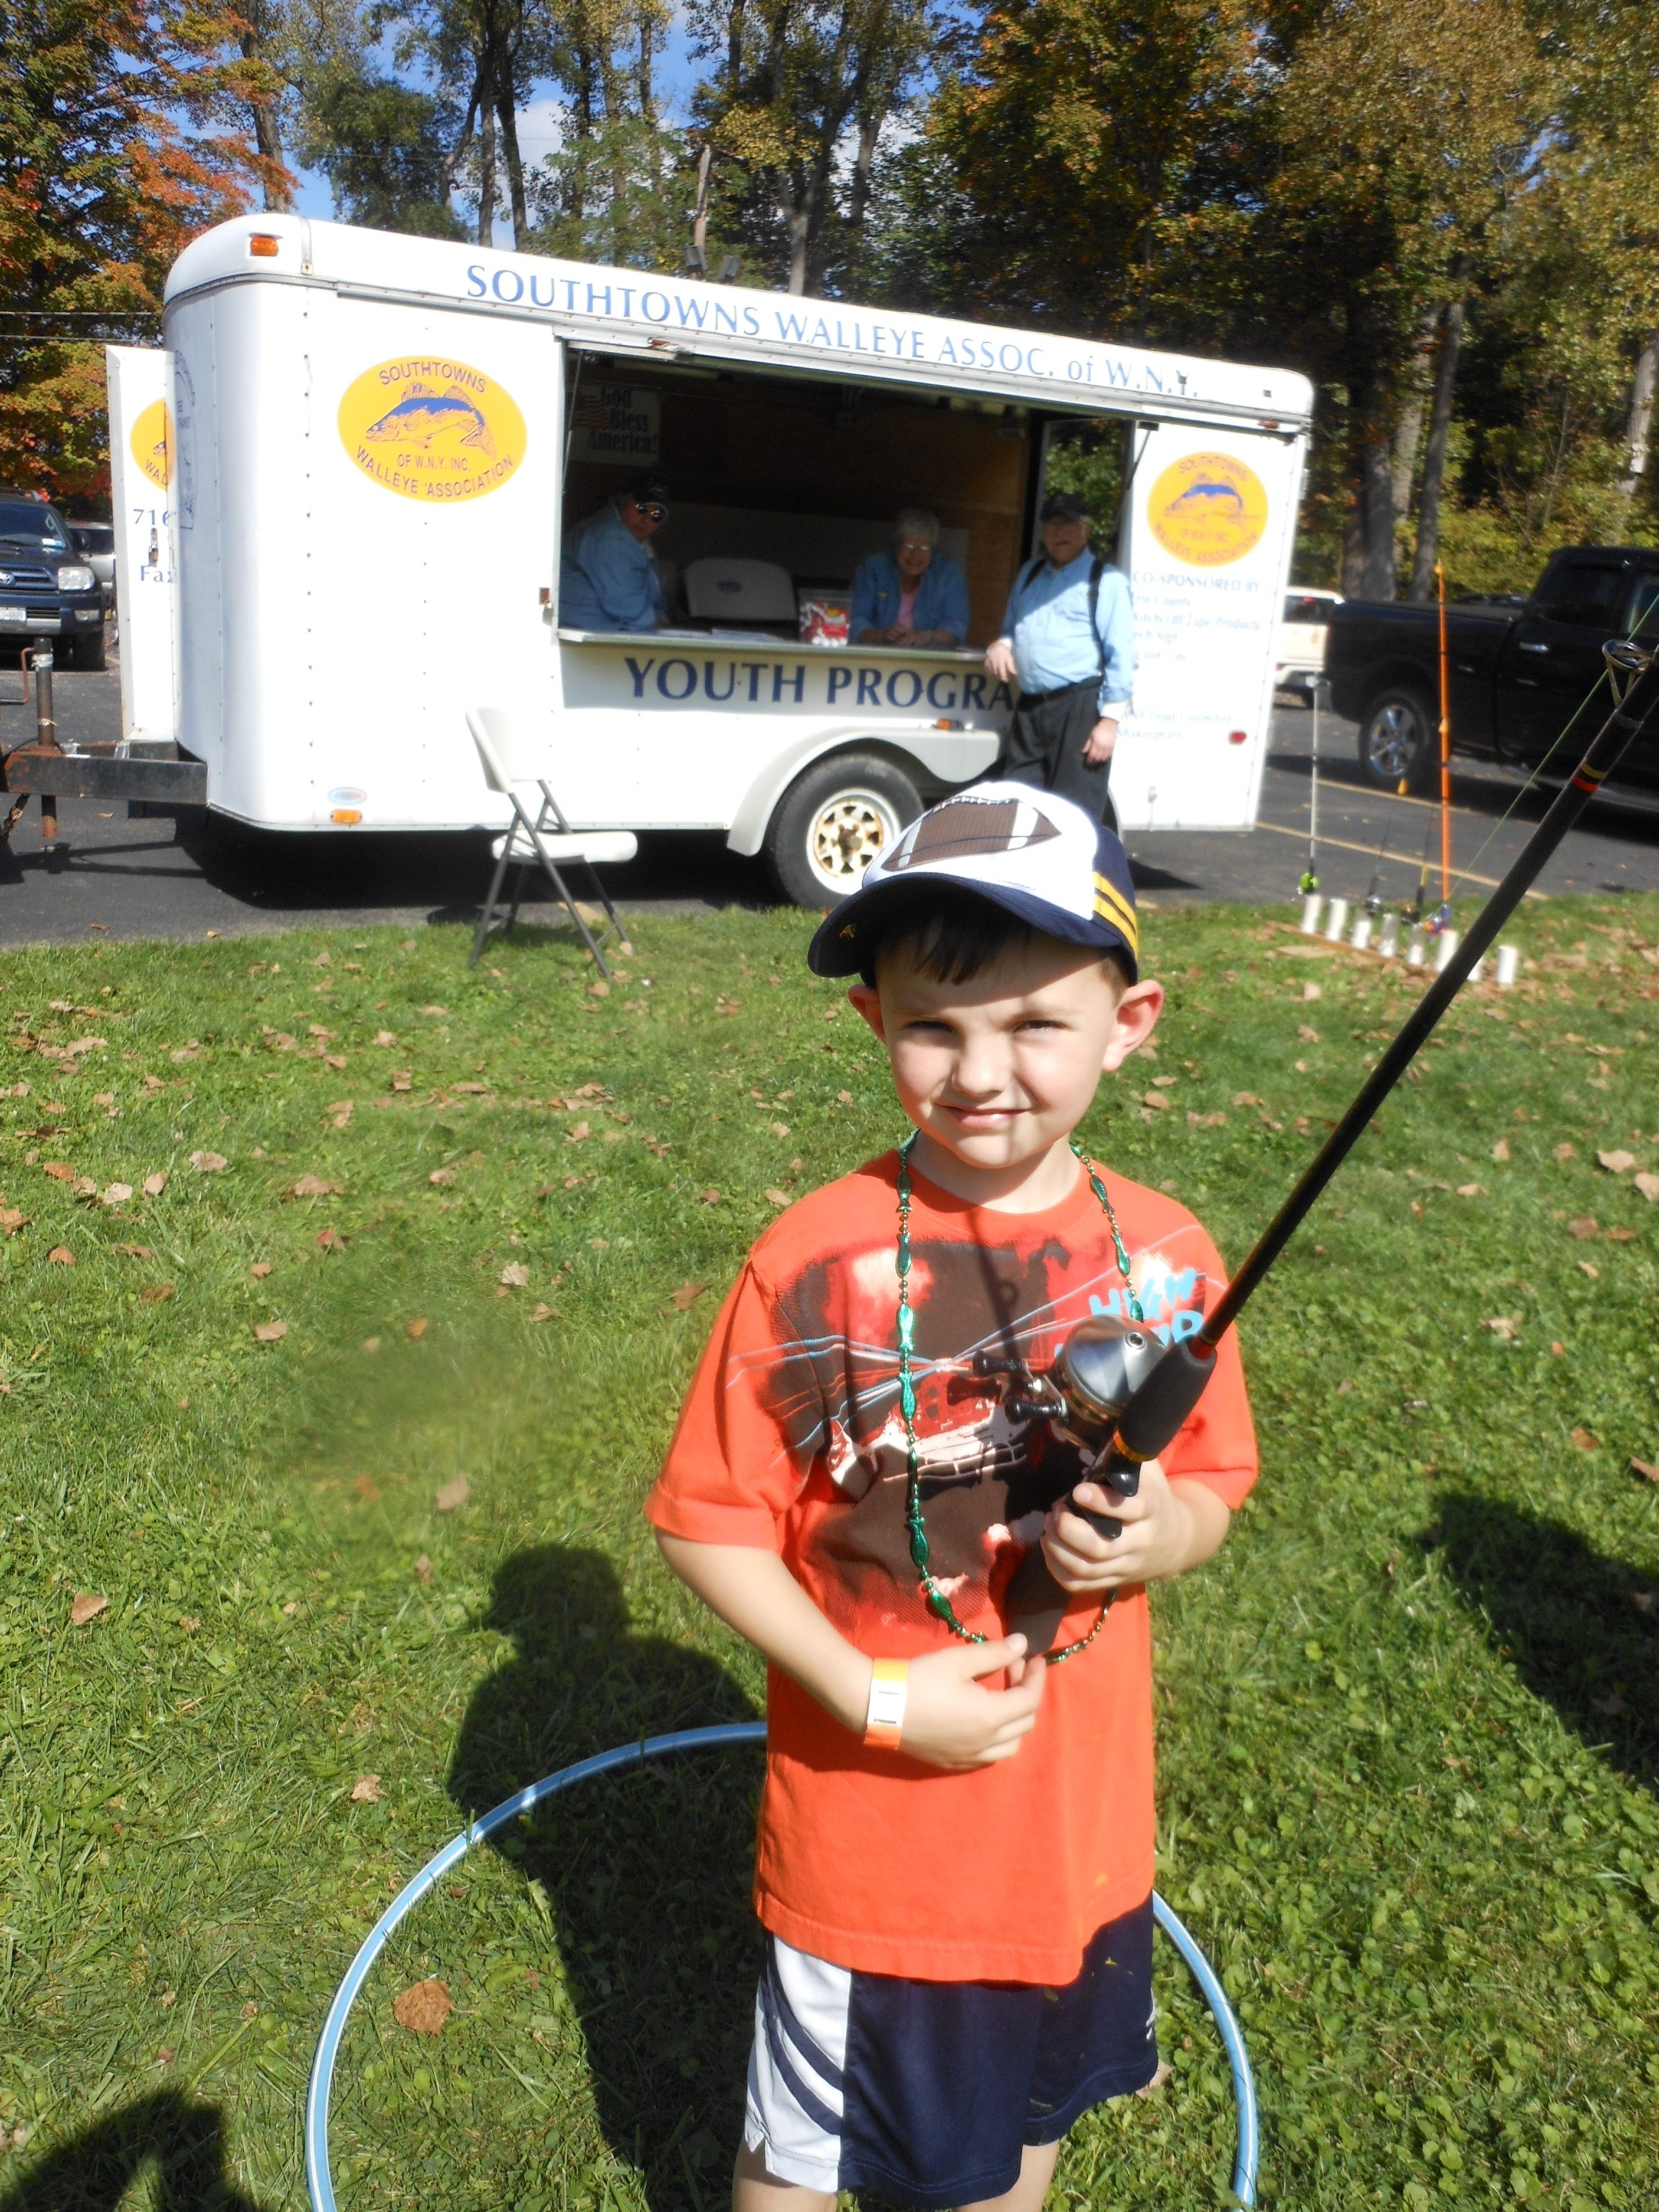 Cameron Kirby was on target while casting during the National Hunting and Fishing Day events held at Elma Conservation Club.